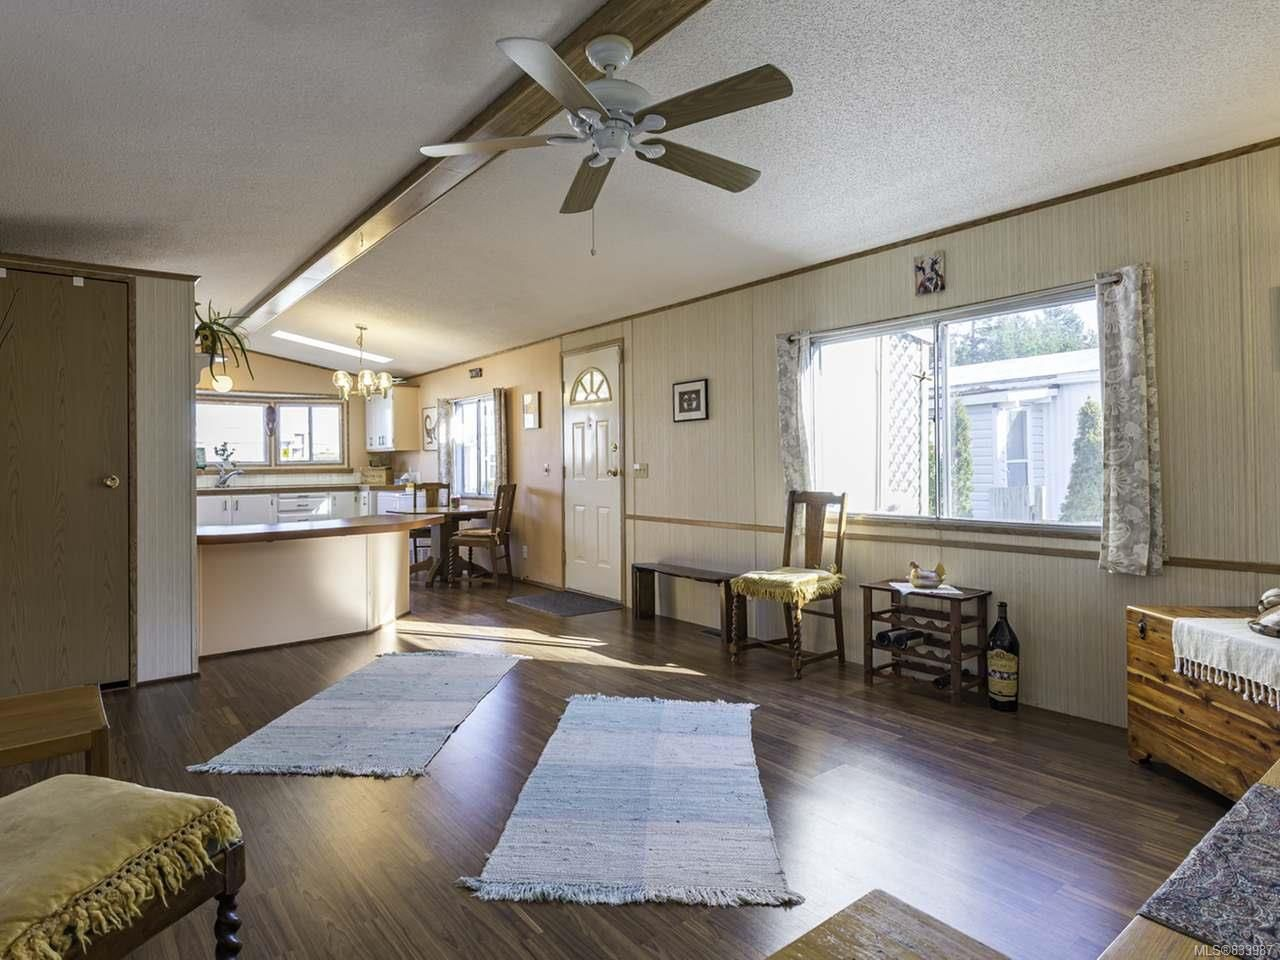 Photo 28: Photos: 64 390 Cowichan Ave in COURTENAY: CV Courtenay East Manufactured Home for sale (Comox Valley)  : MLS®# 833987